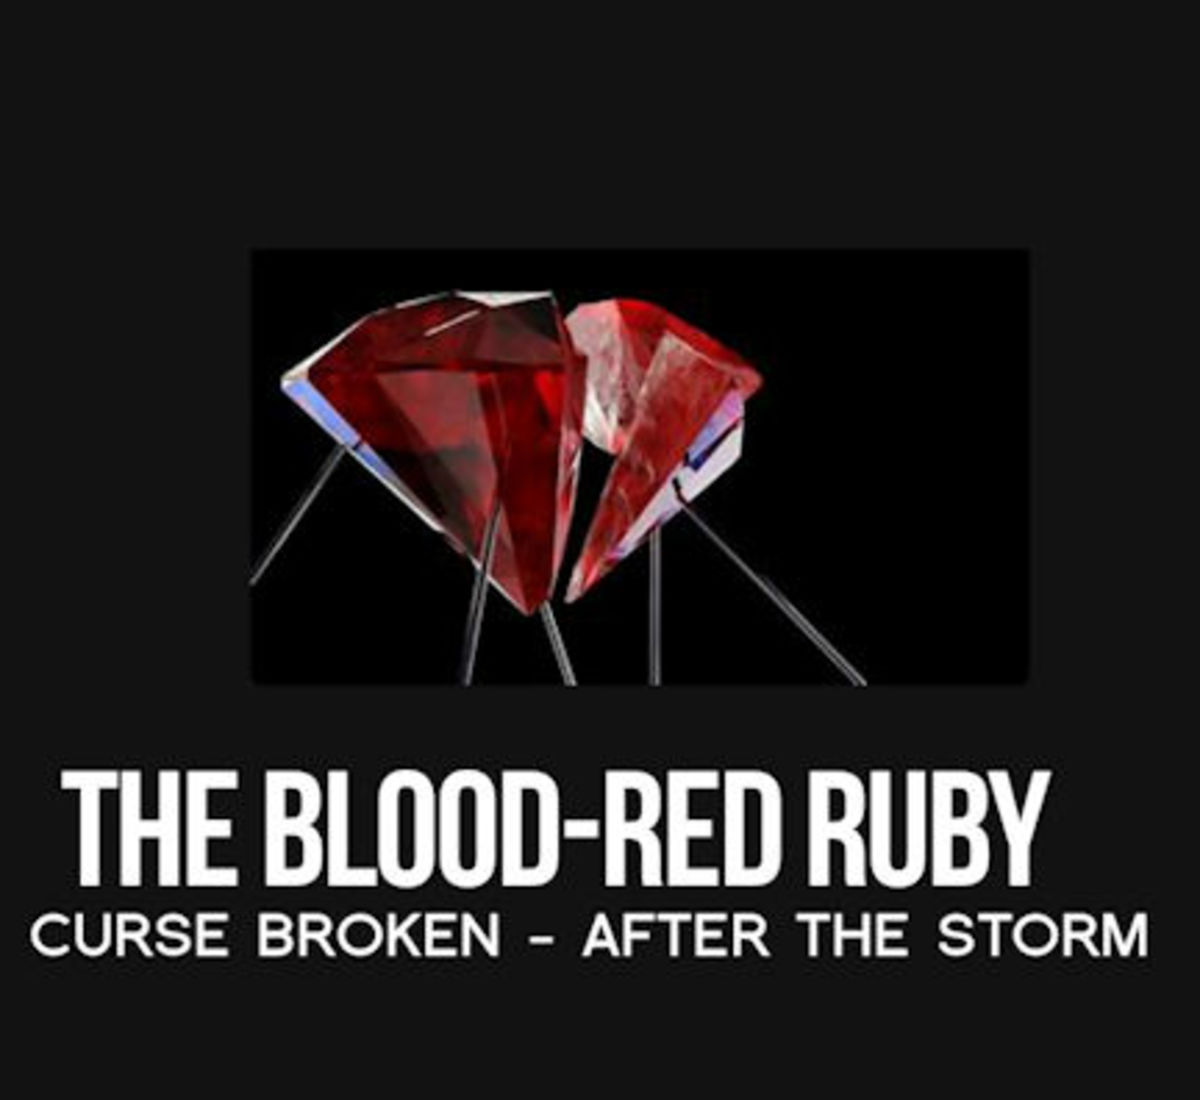 The Blood-Red Ruby: After the Storm Conclusion